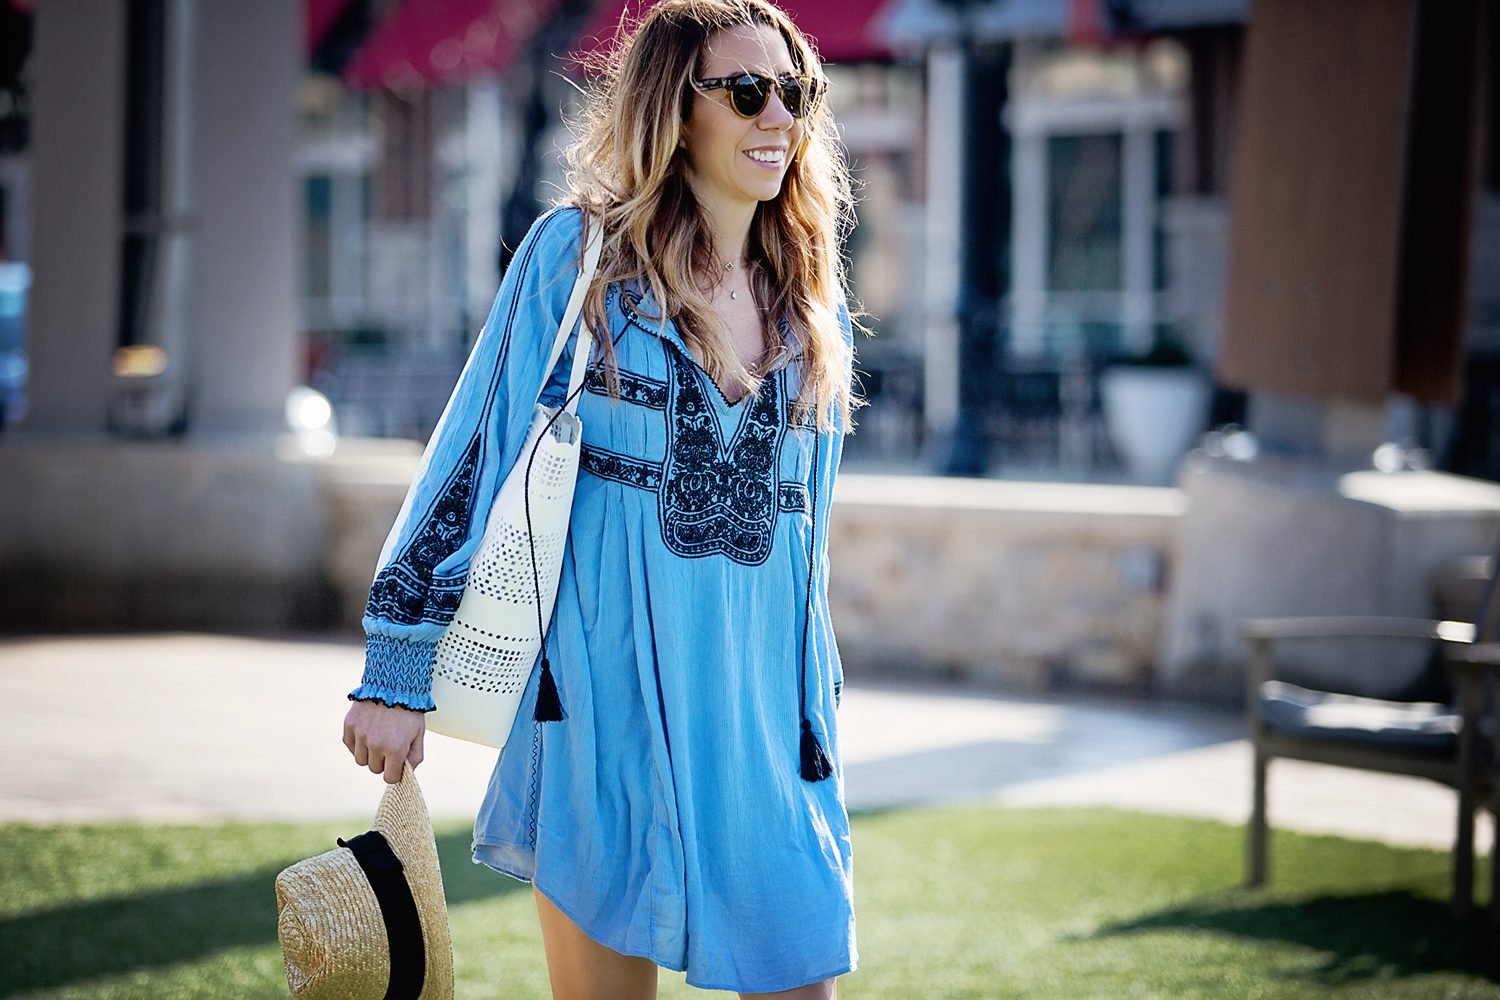 The Motherchic wearing free people mini dress